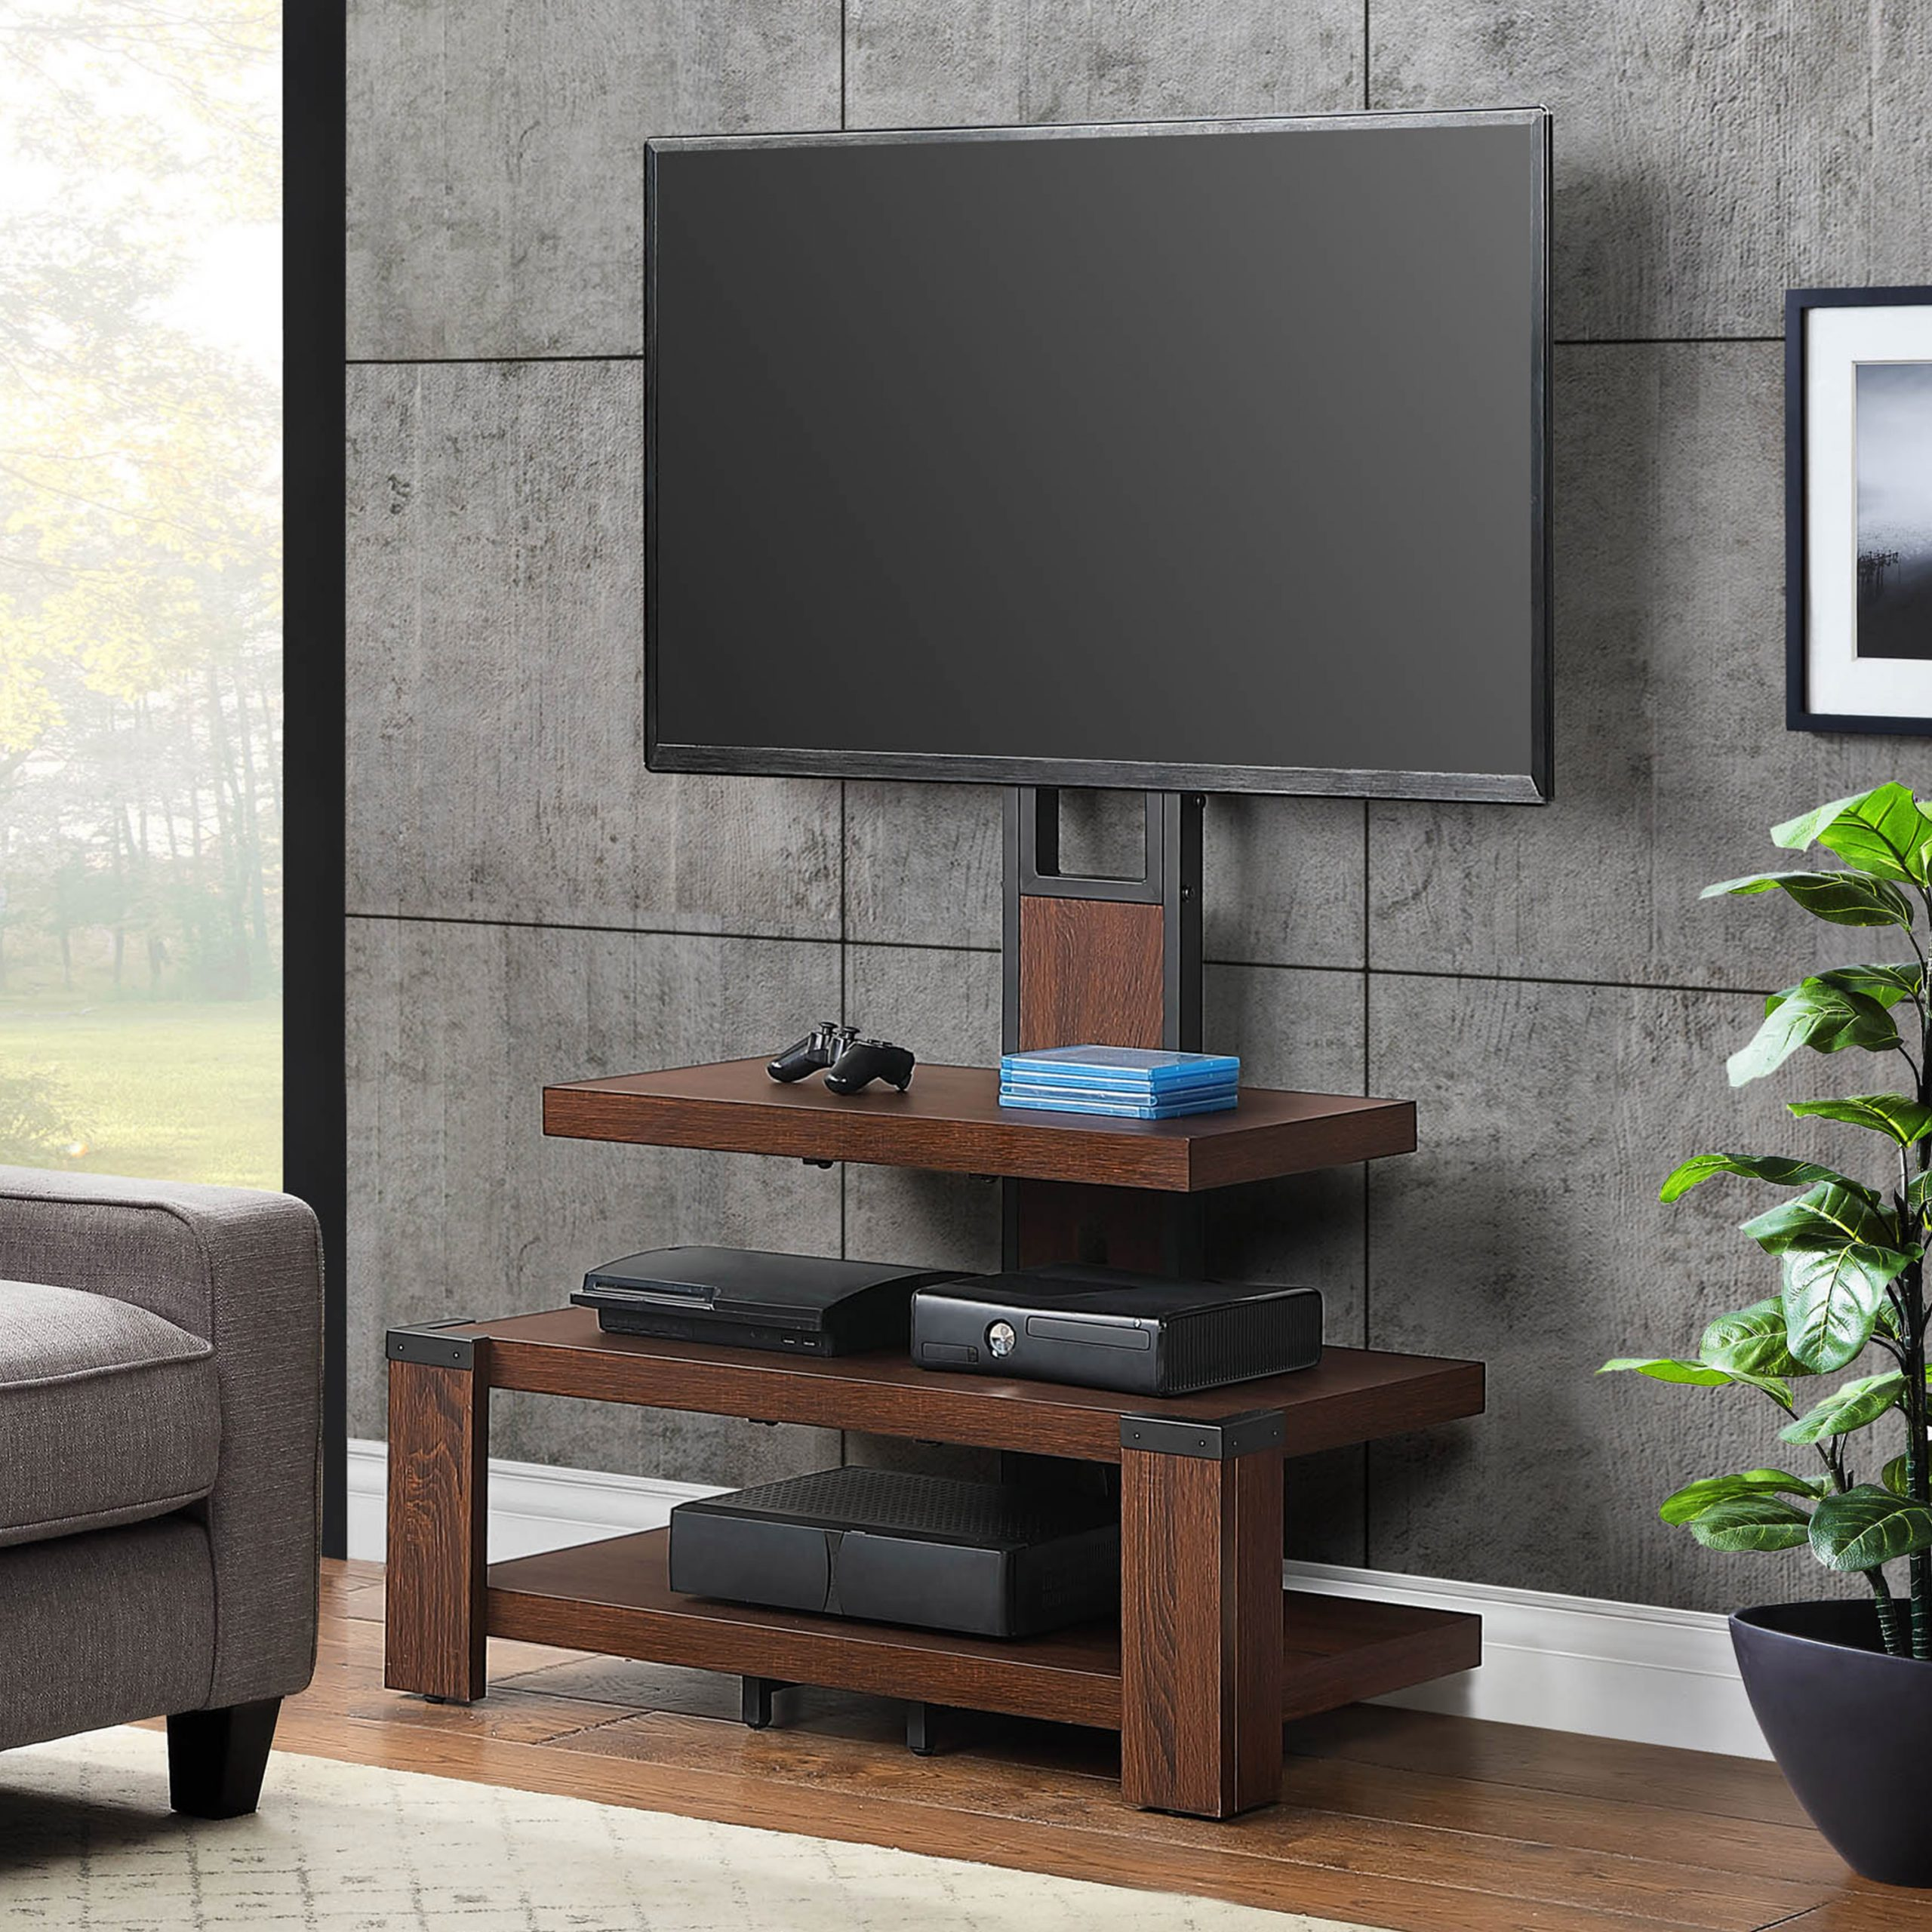 Favorite Tv Stands Regarding Whalen 3 Shelf Television Stand With Floater Mount For Tvs (View 1 of 16)